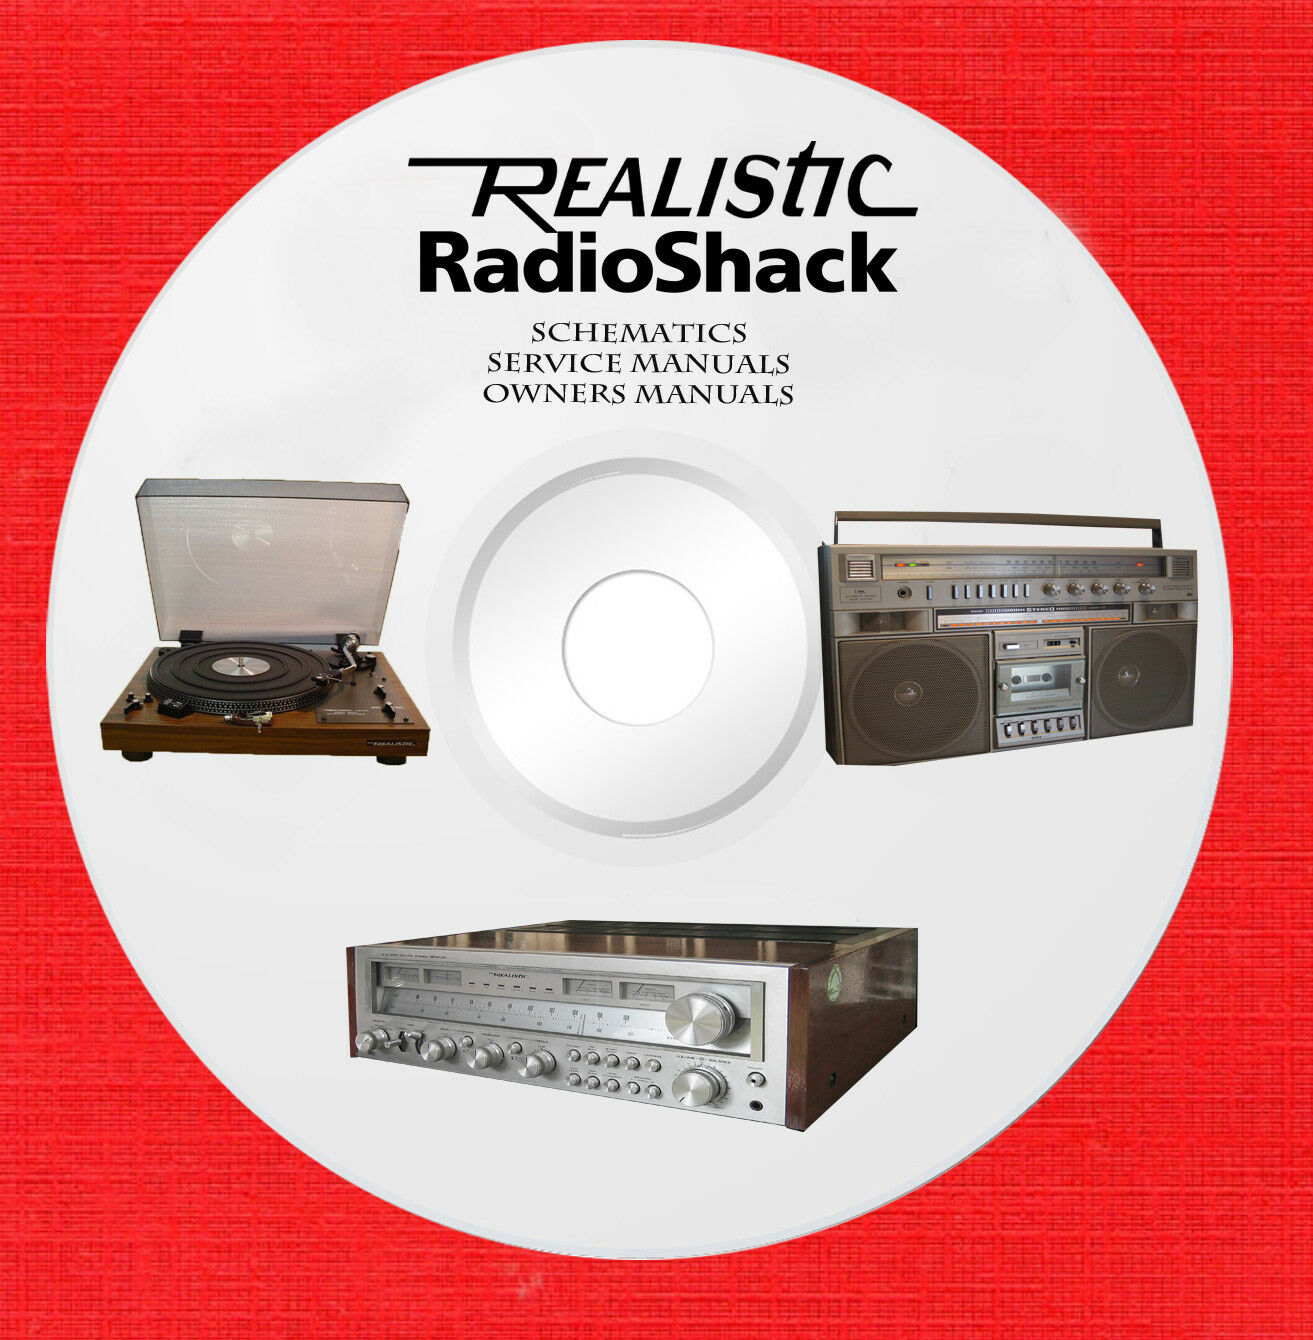 Radio shack 15 302 owners manual ebook array realistic radio shack audio repair service owner manuals on 1 dvd in rh picclick fandeluxe Images